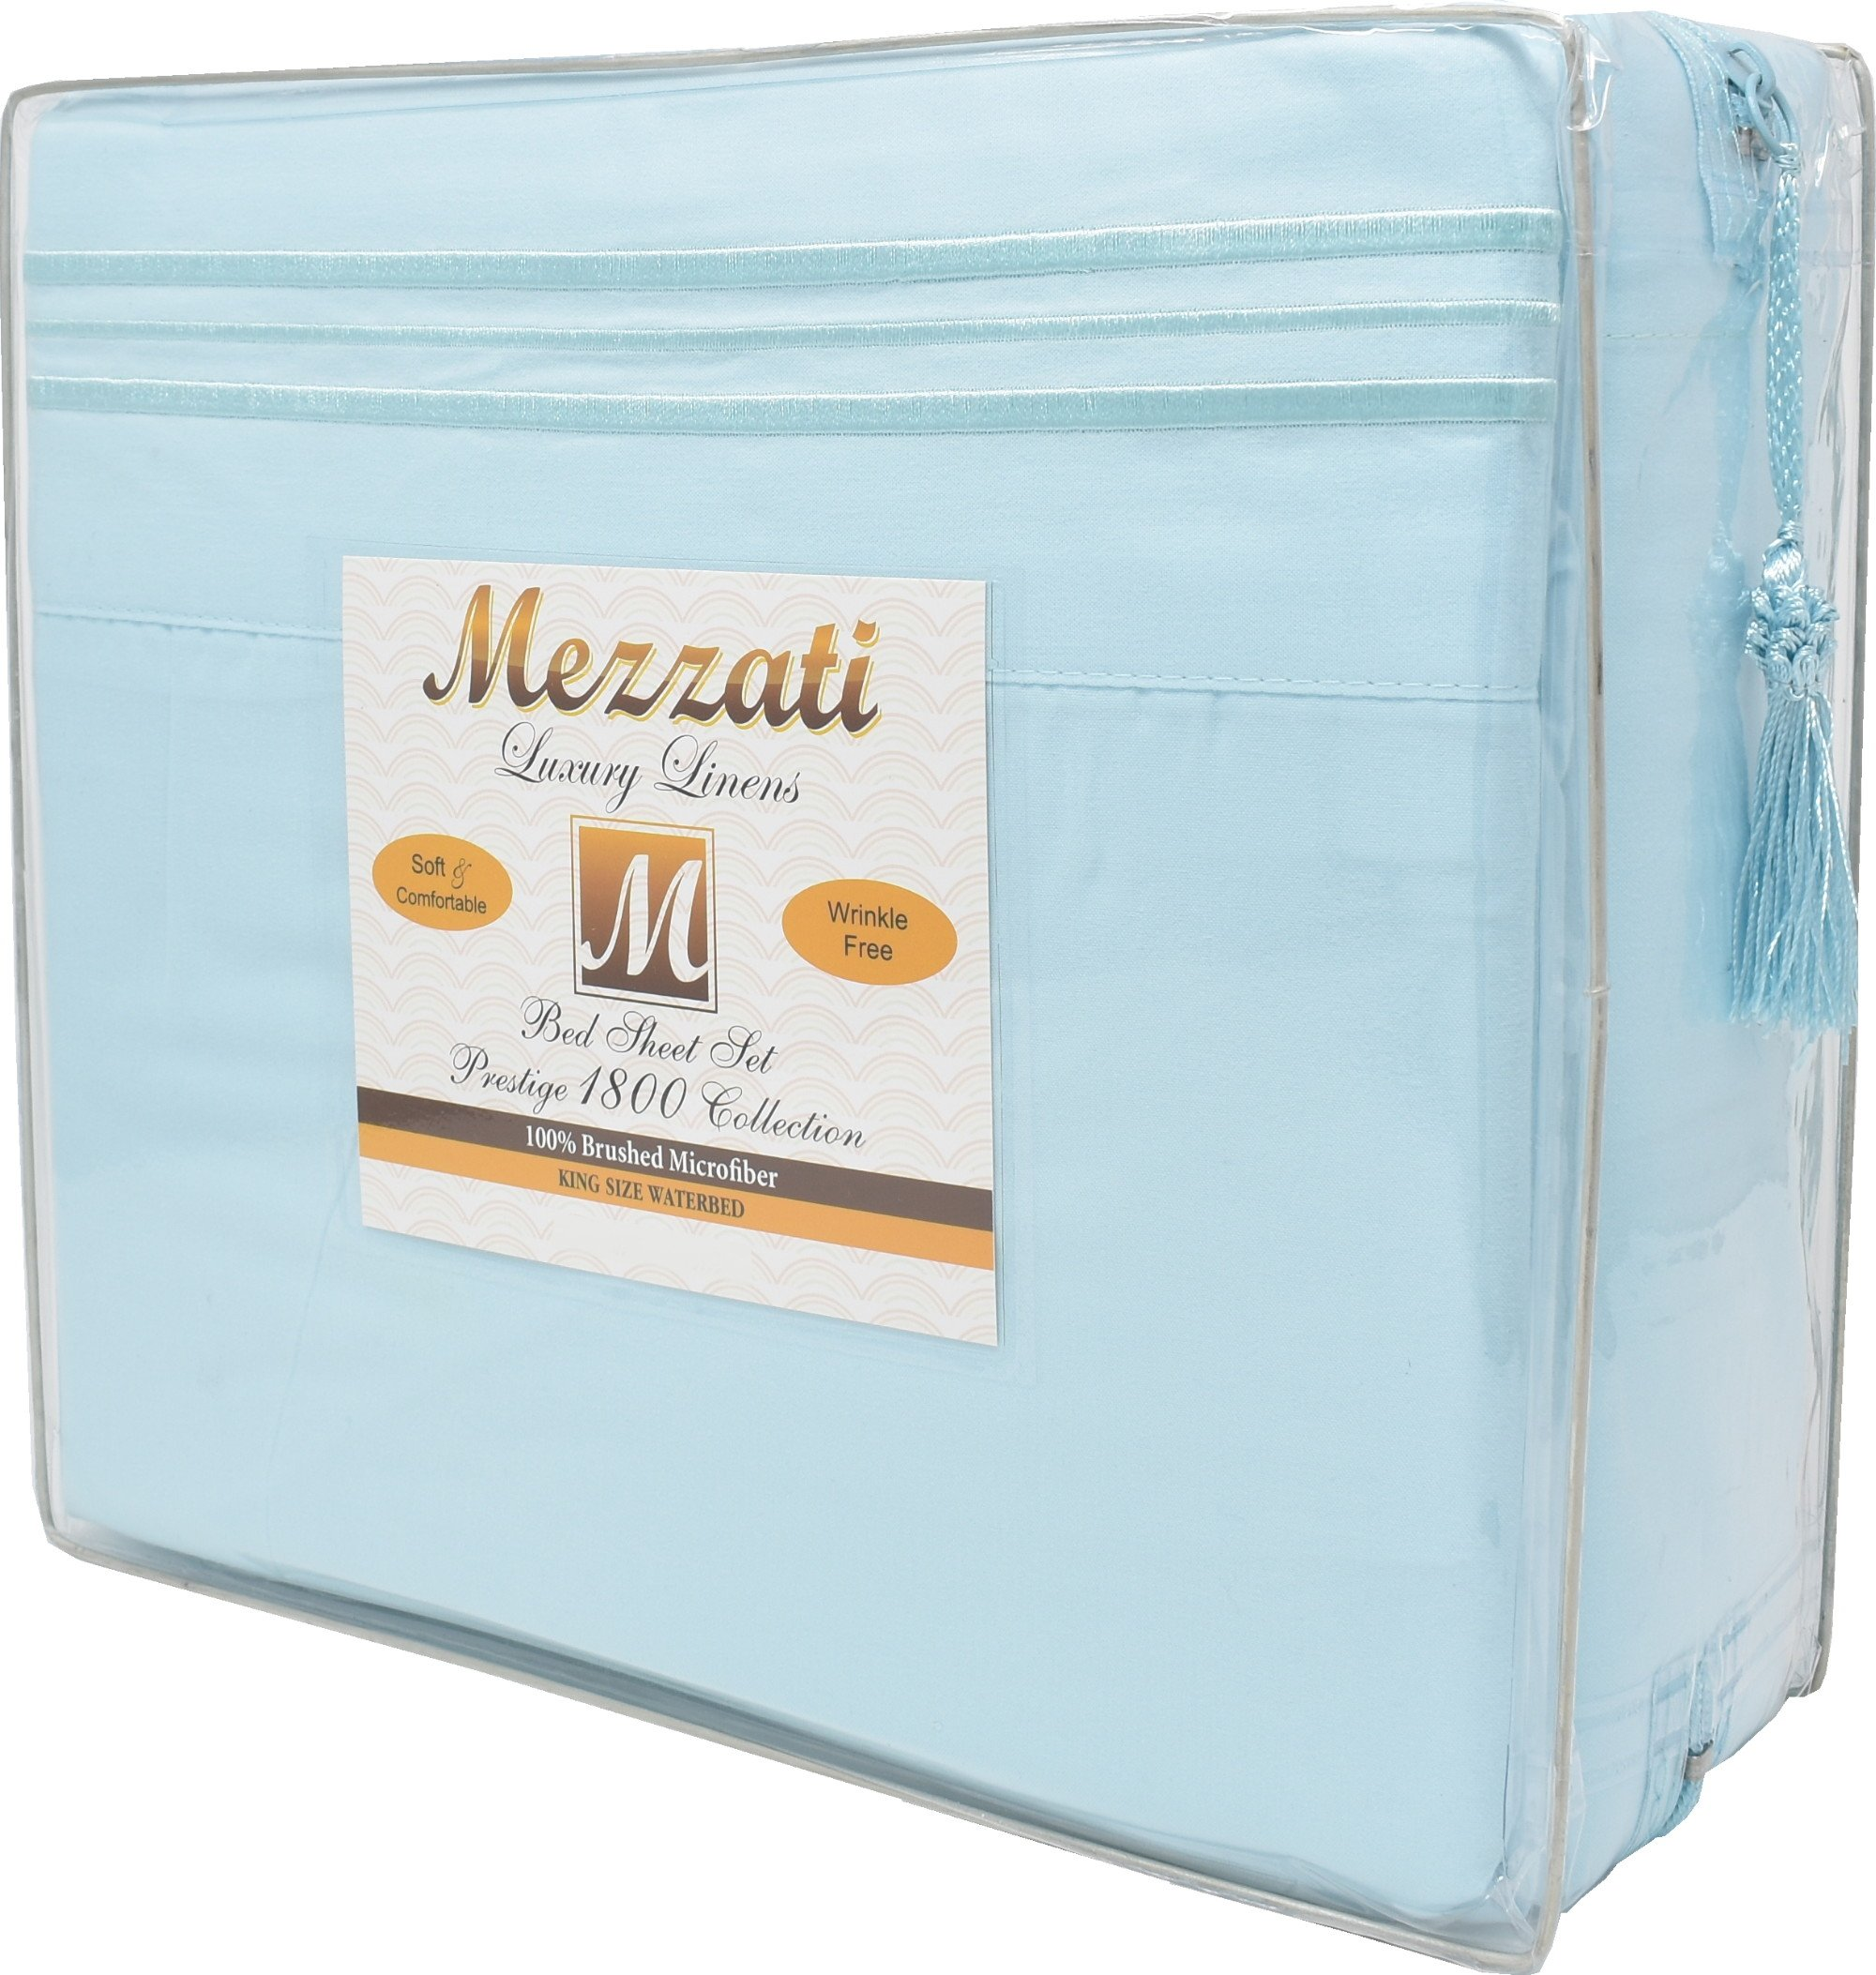 Mezzati Soft and Comfortable Waterbed Sheets Set – 1800 Prestige Brushed Microfiber Collection Bedding (Light Blue, King Unattached) by Mezzati (Image #2)